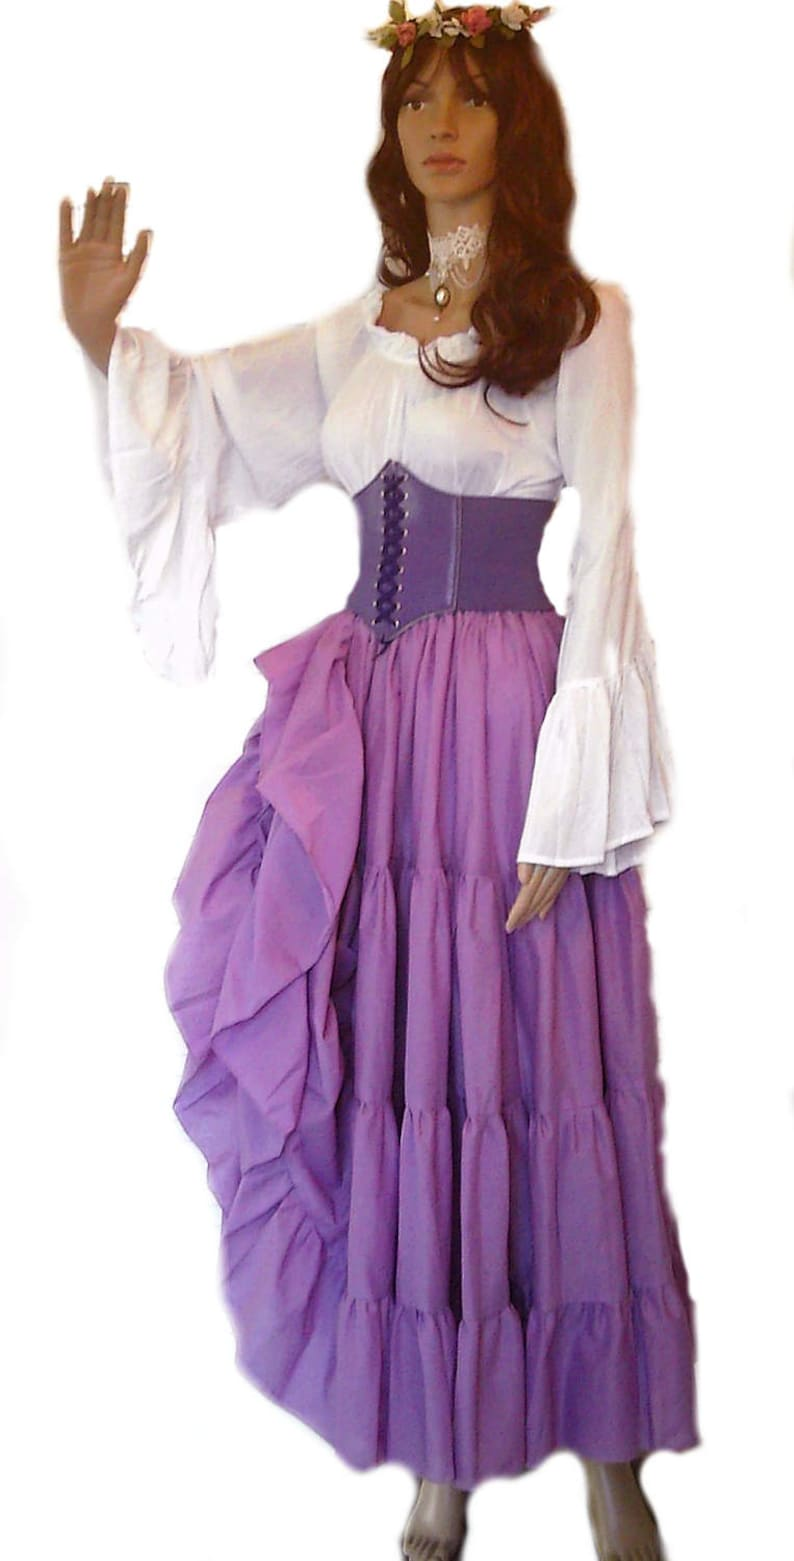 8b951447 Renaissance Dress Chemise Corset Outfit 4 pcs Wench Pirate Medieval  Steampunk Costume Celtic Cosplay Fair Orchid